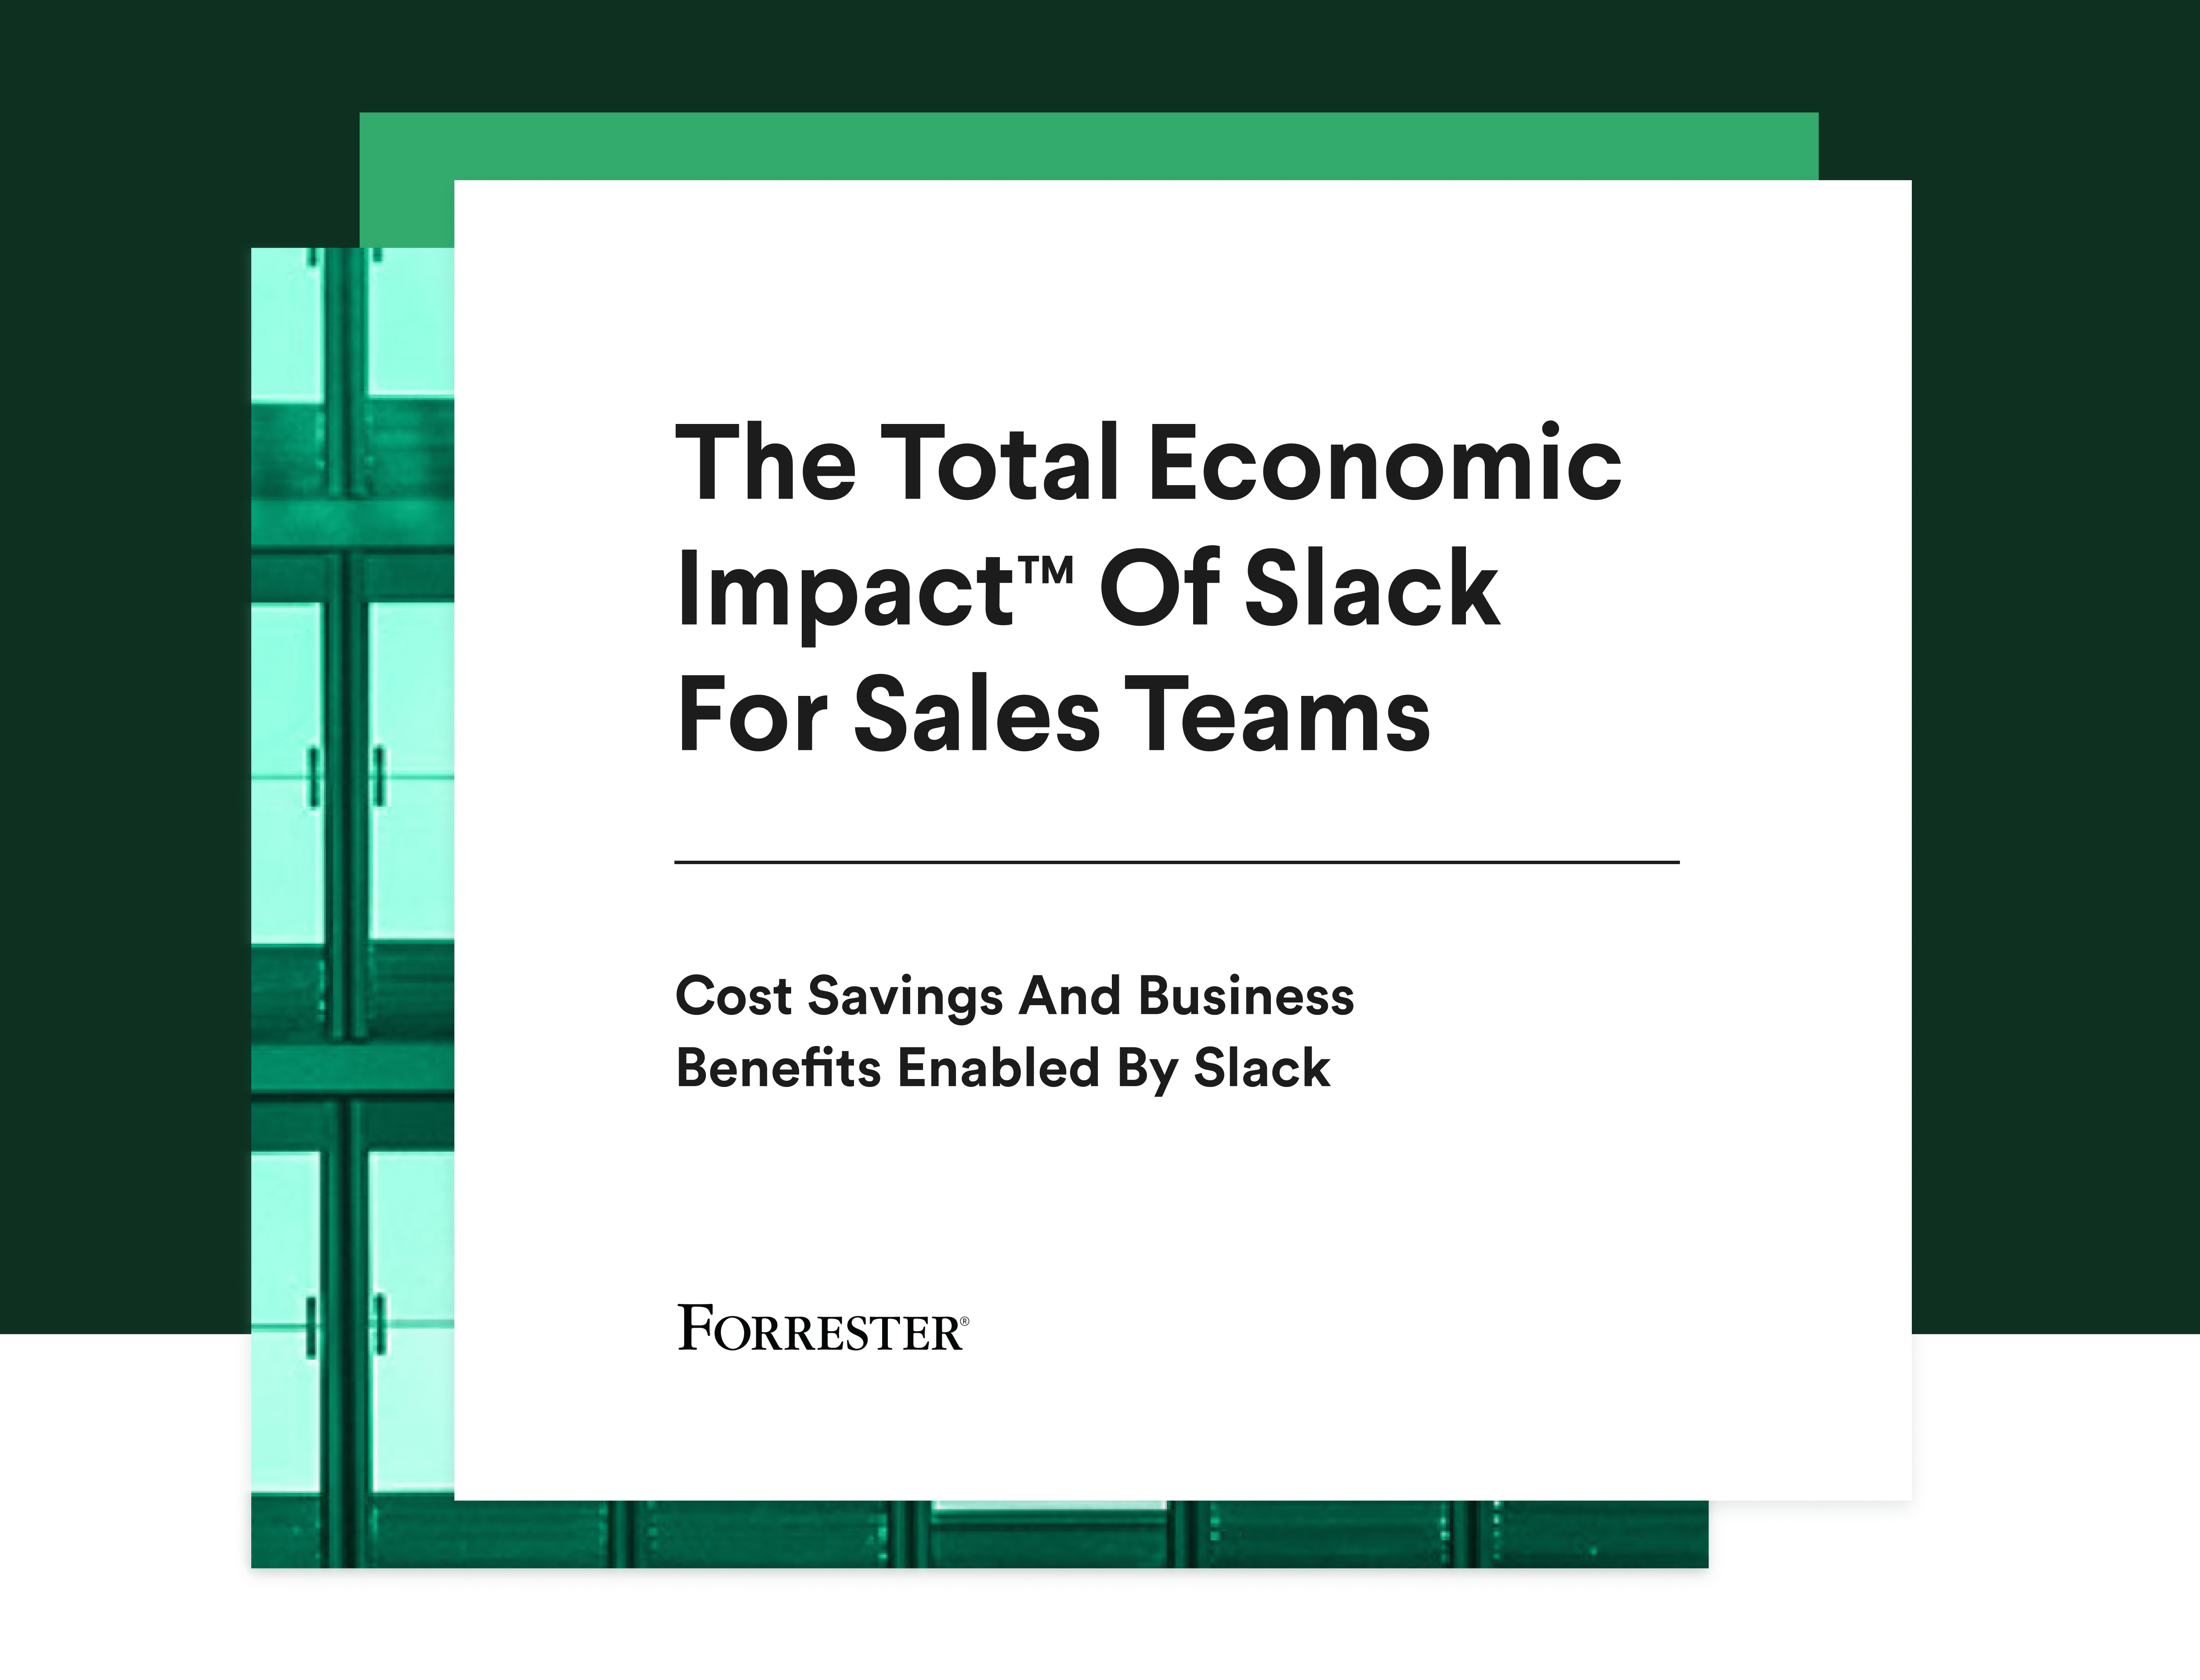 Cover of The Total Economic Impact Of Slack For Sales Teams study